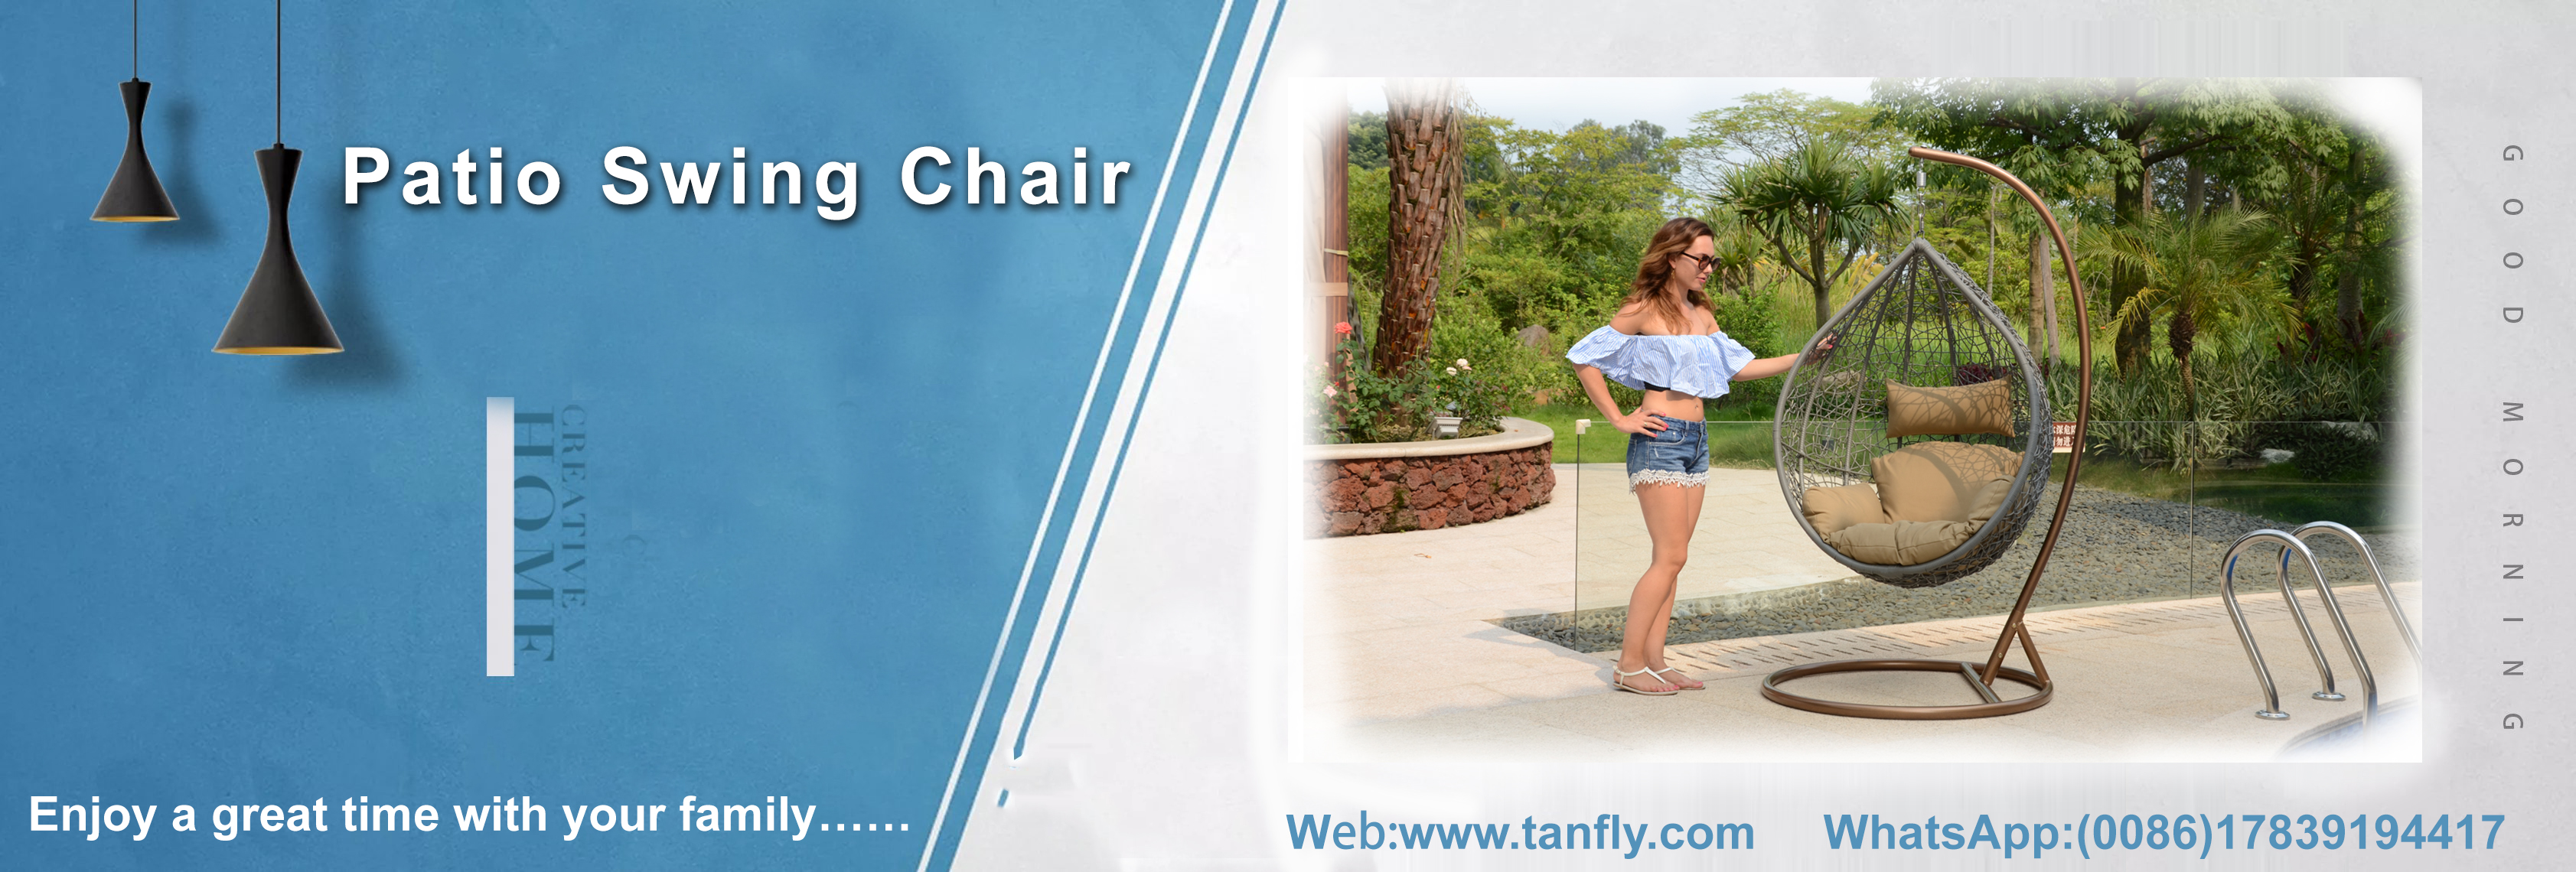 Patio Swing Chair.jpg